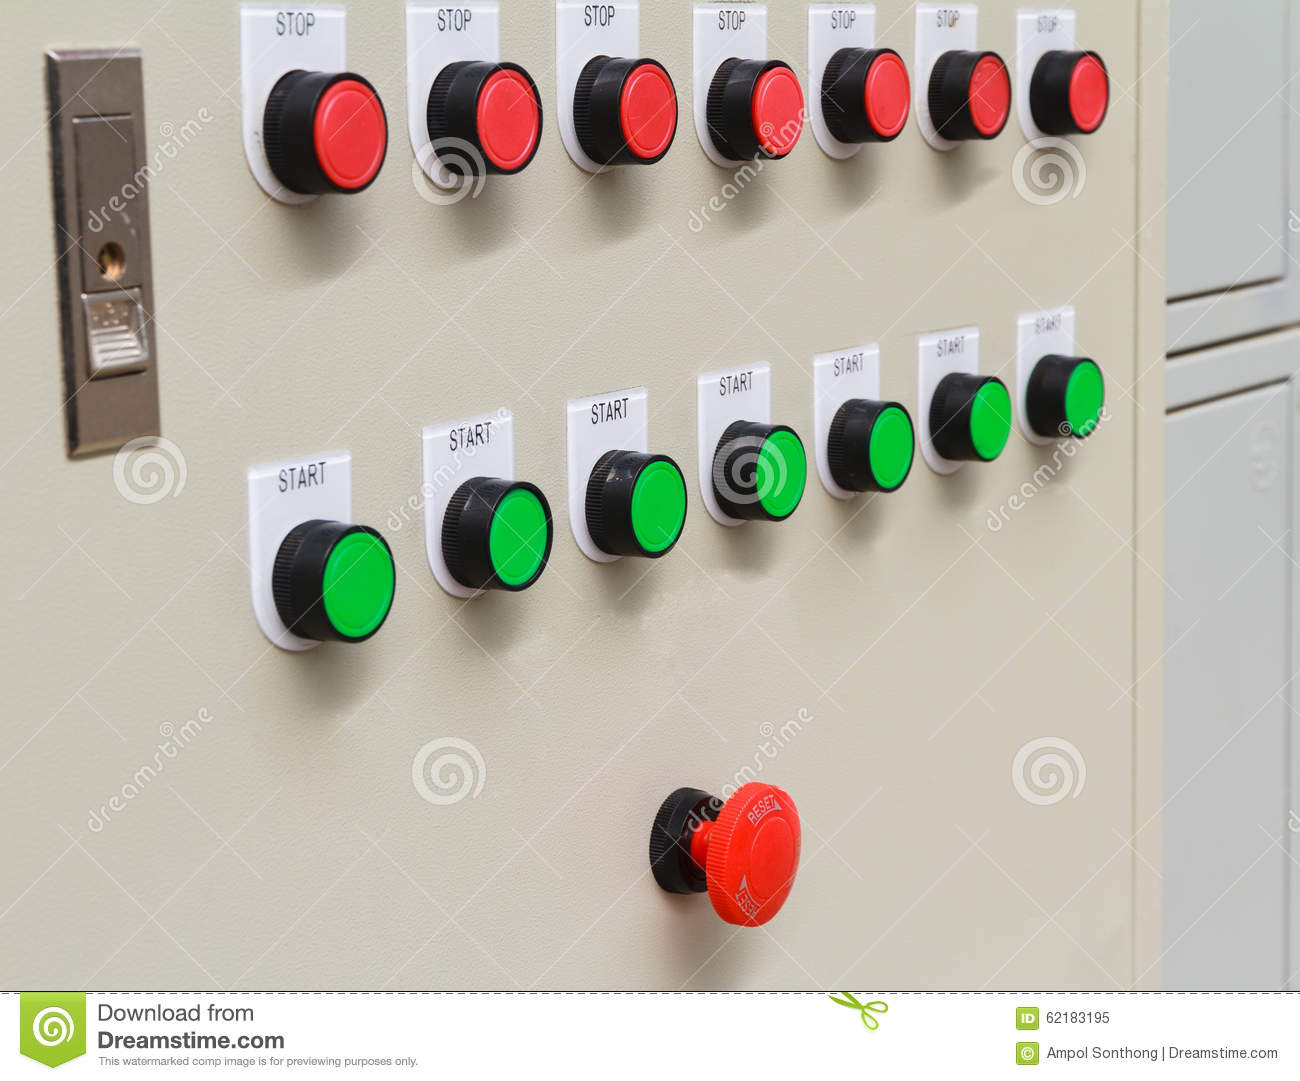 Emergency stop icon clipart emergency off - Buttons Control Emergency